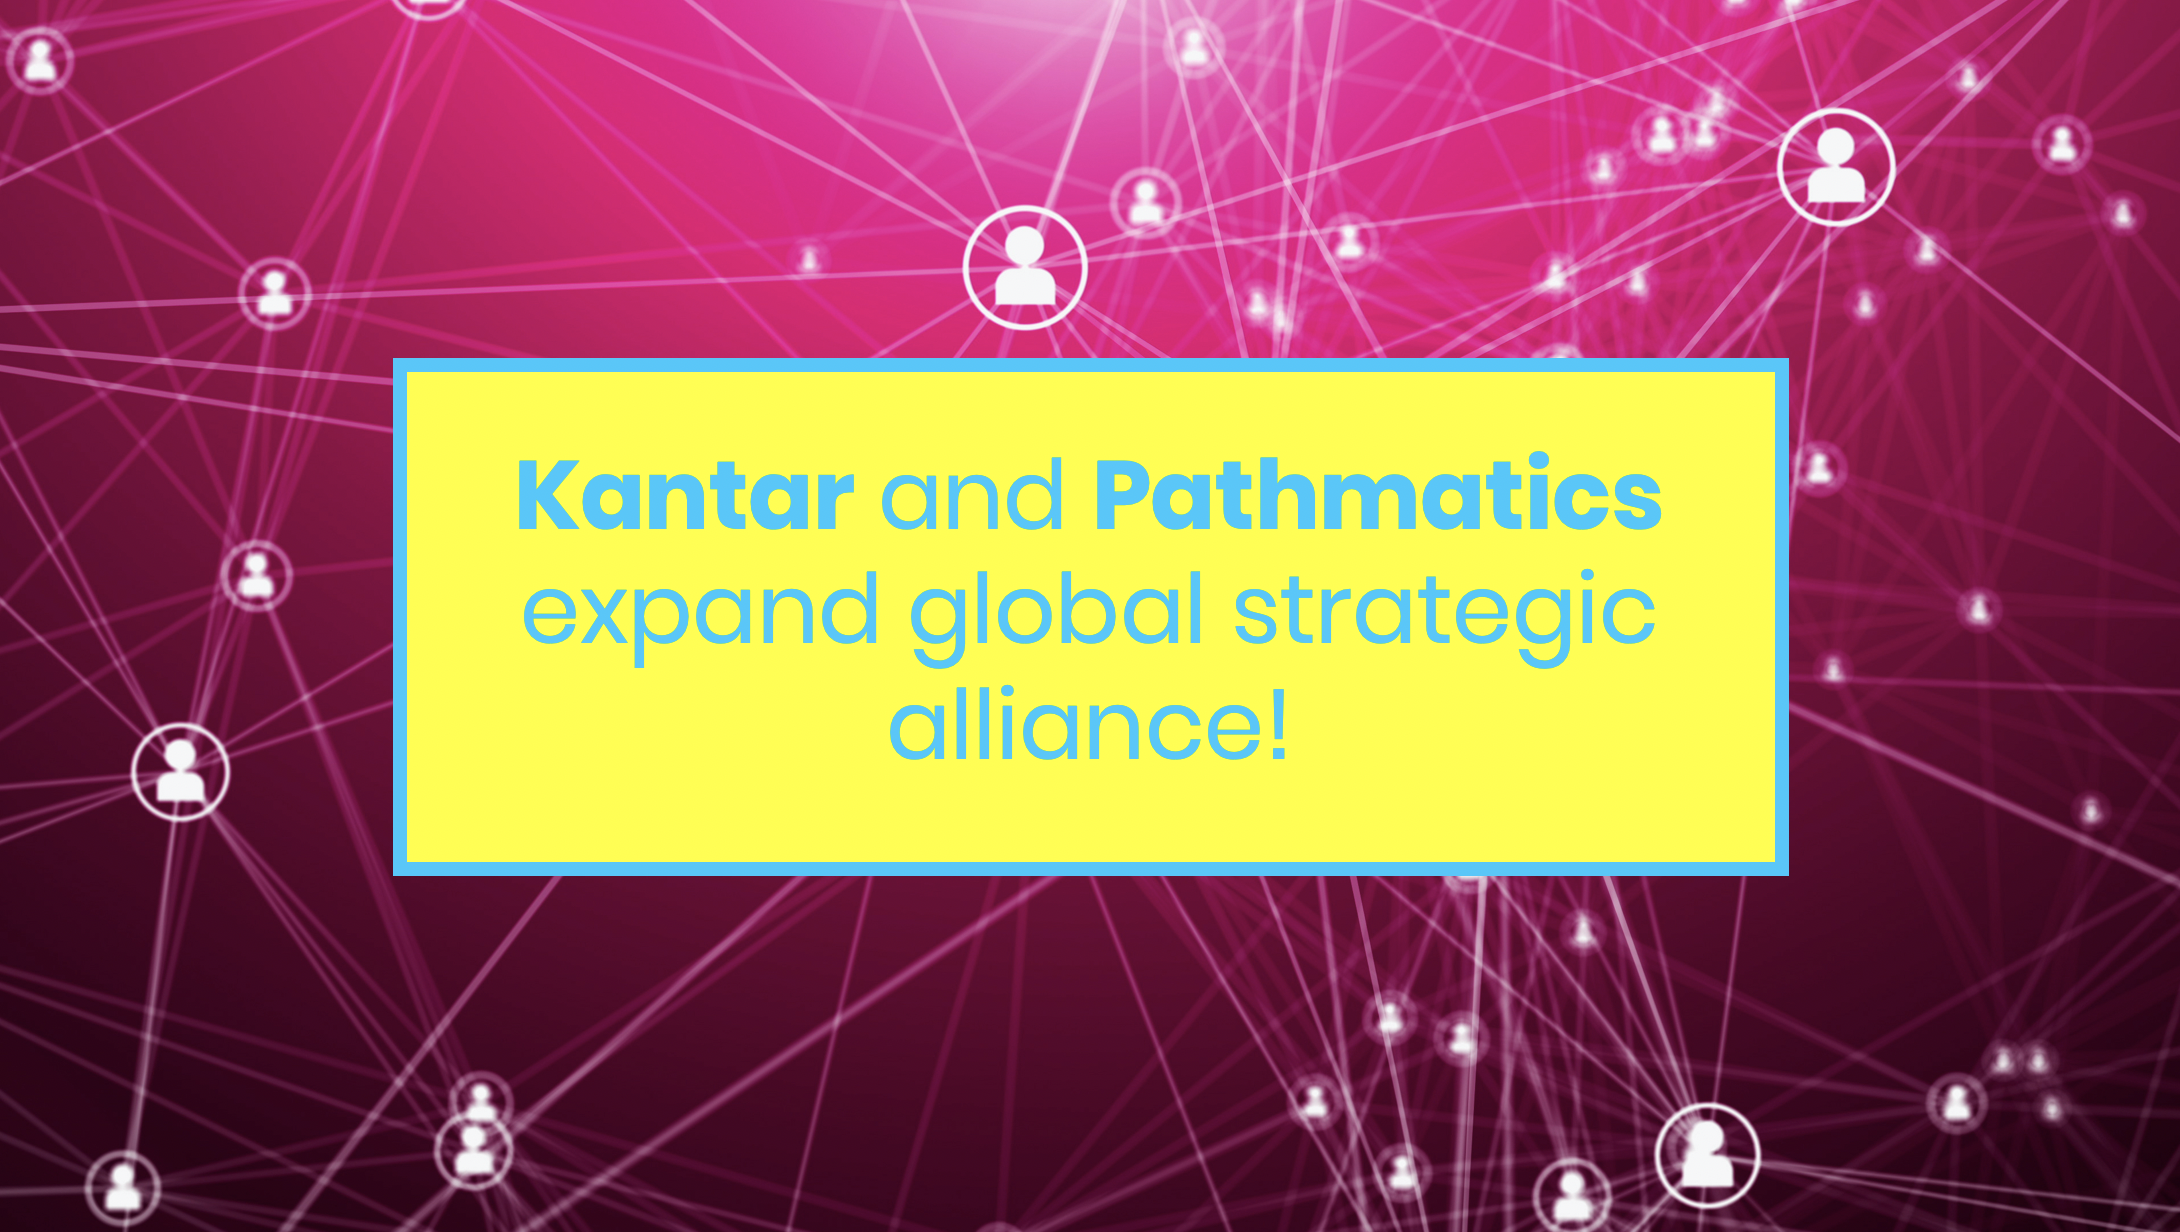 Pathmatics & Kantar Expand Global Strategic Alliance